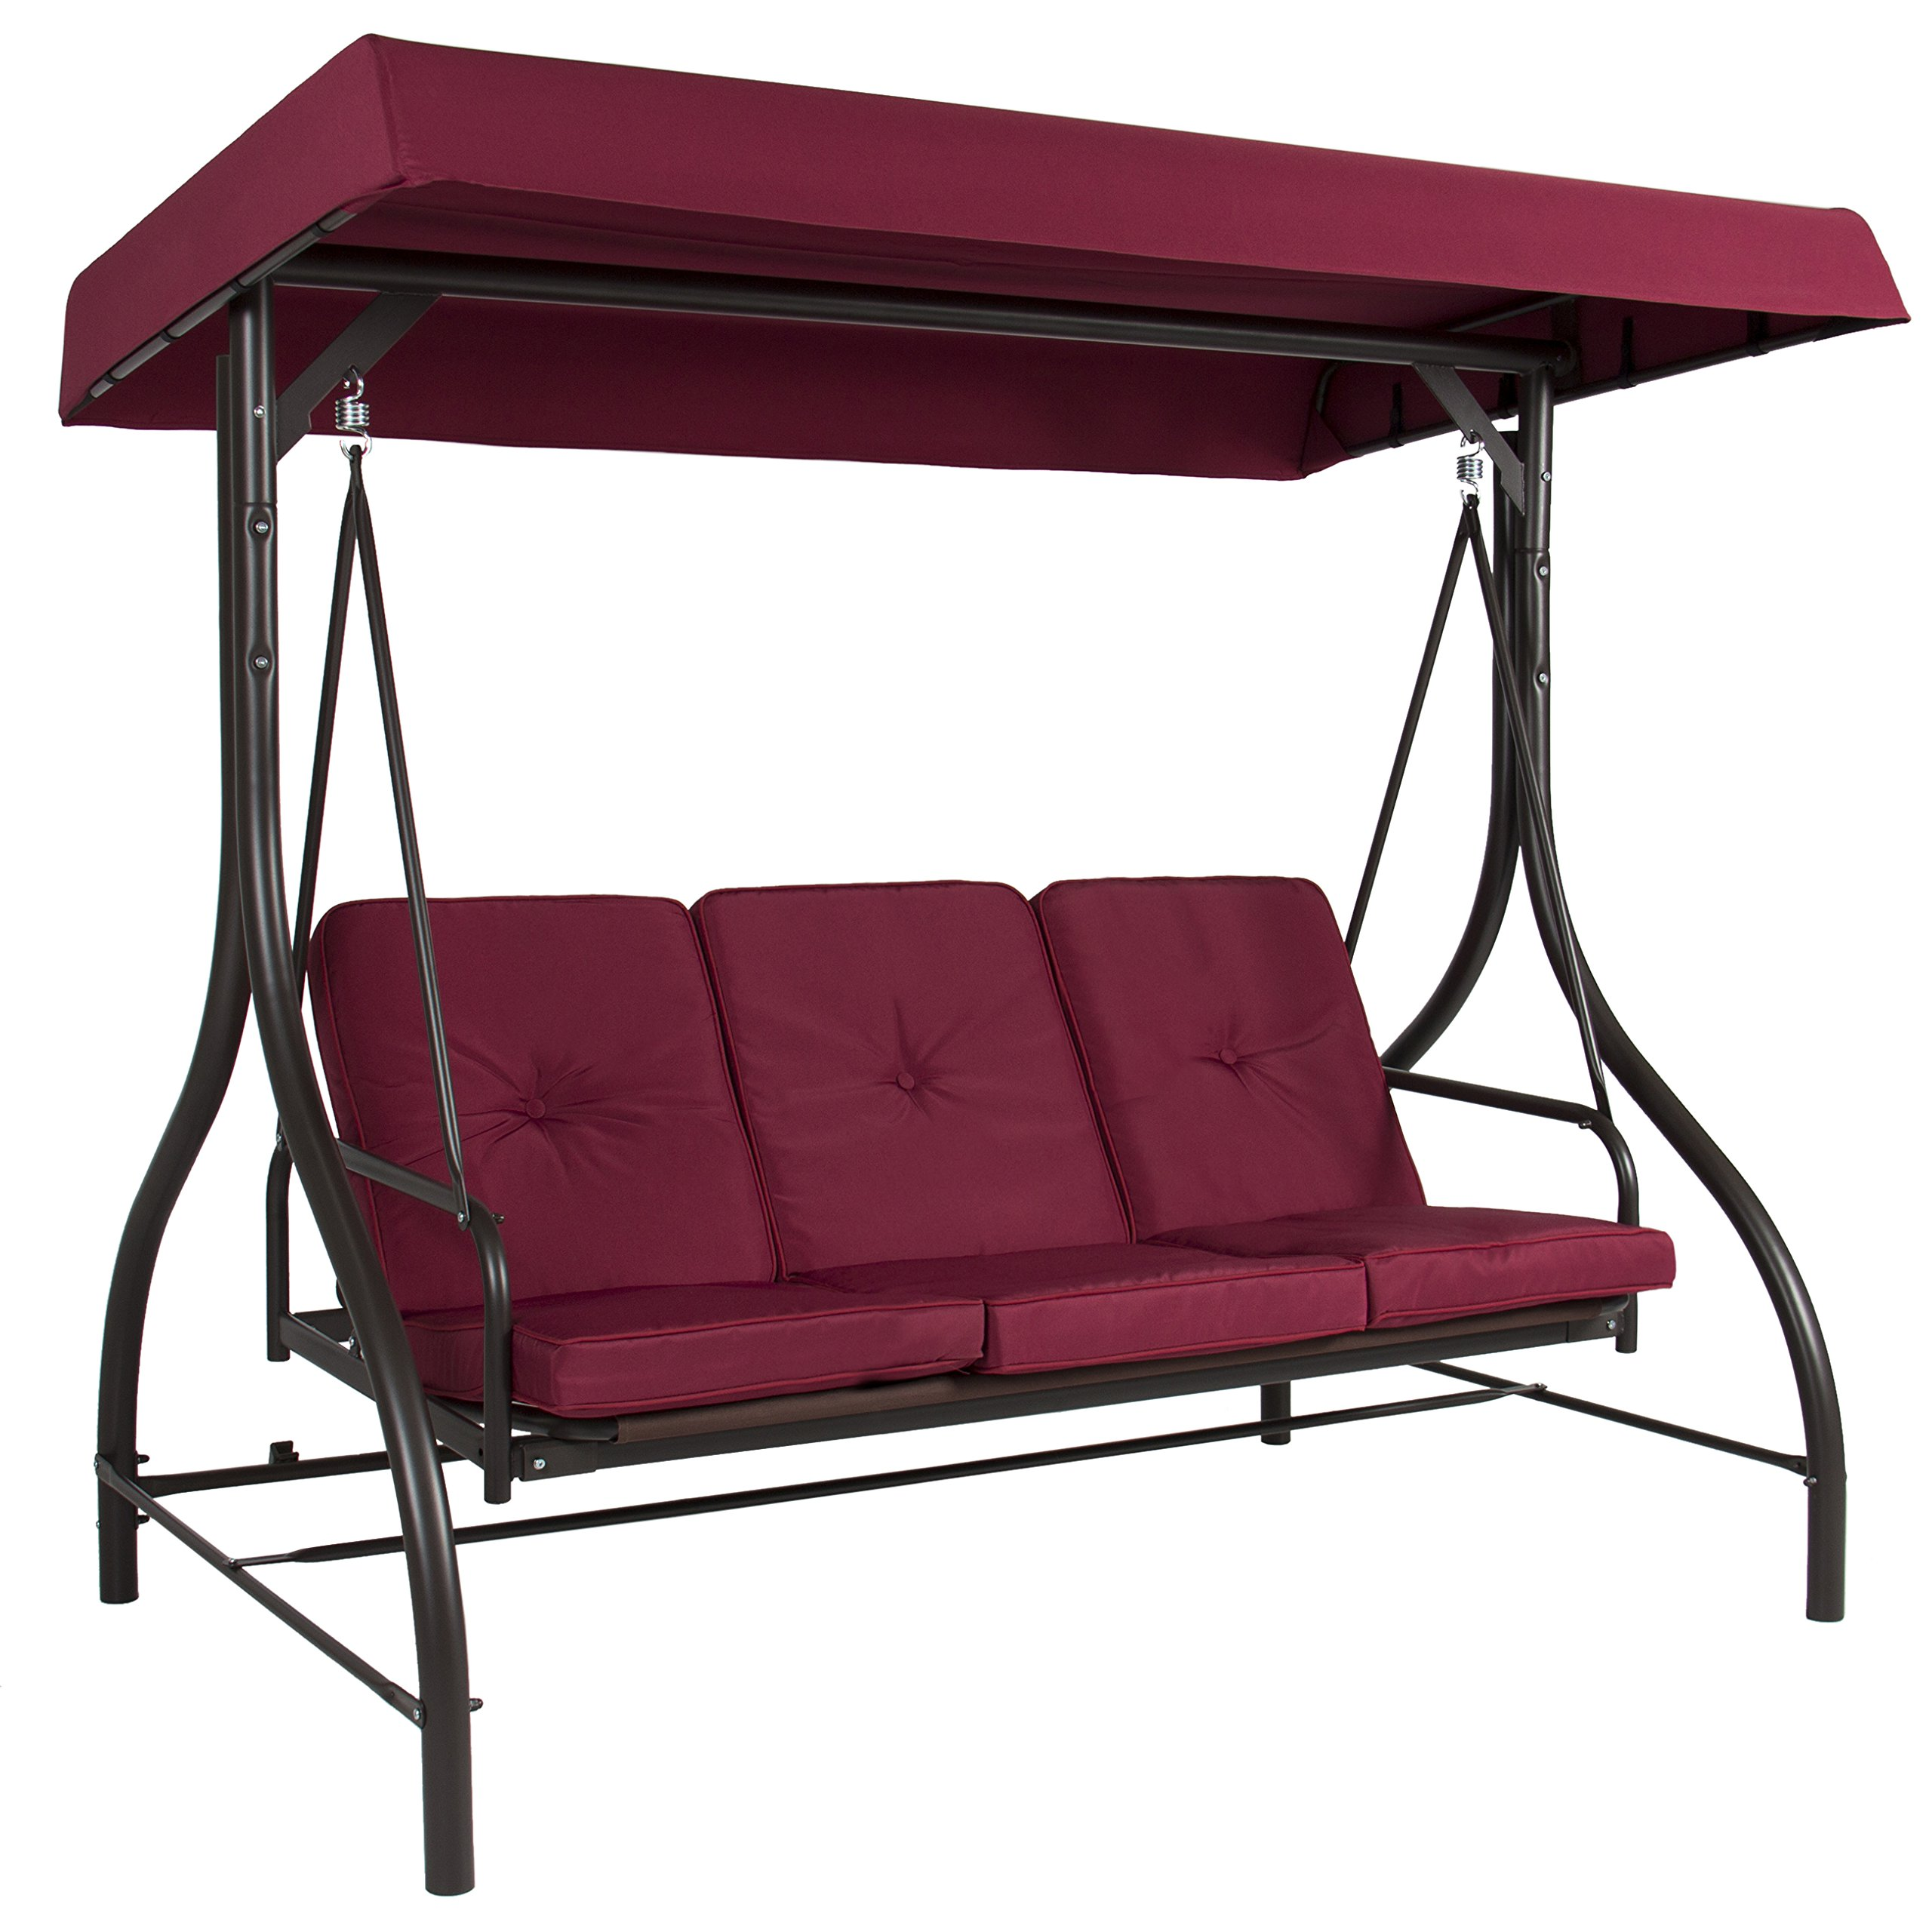 Best Choice Products Converting Outdoor Swing Canopy Hammock Seats 3 Patio Deck Furniture Burgundy by Best Choice Products